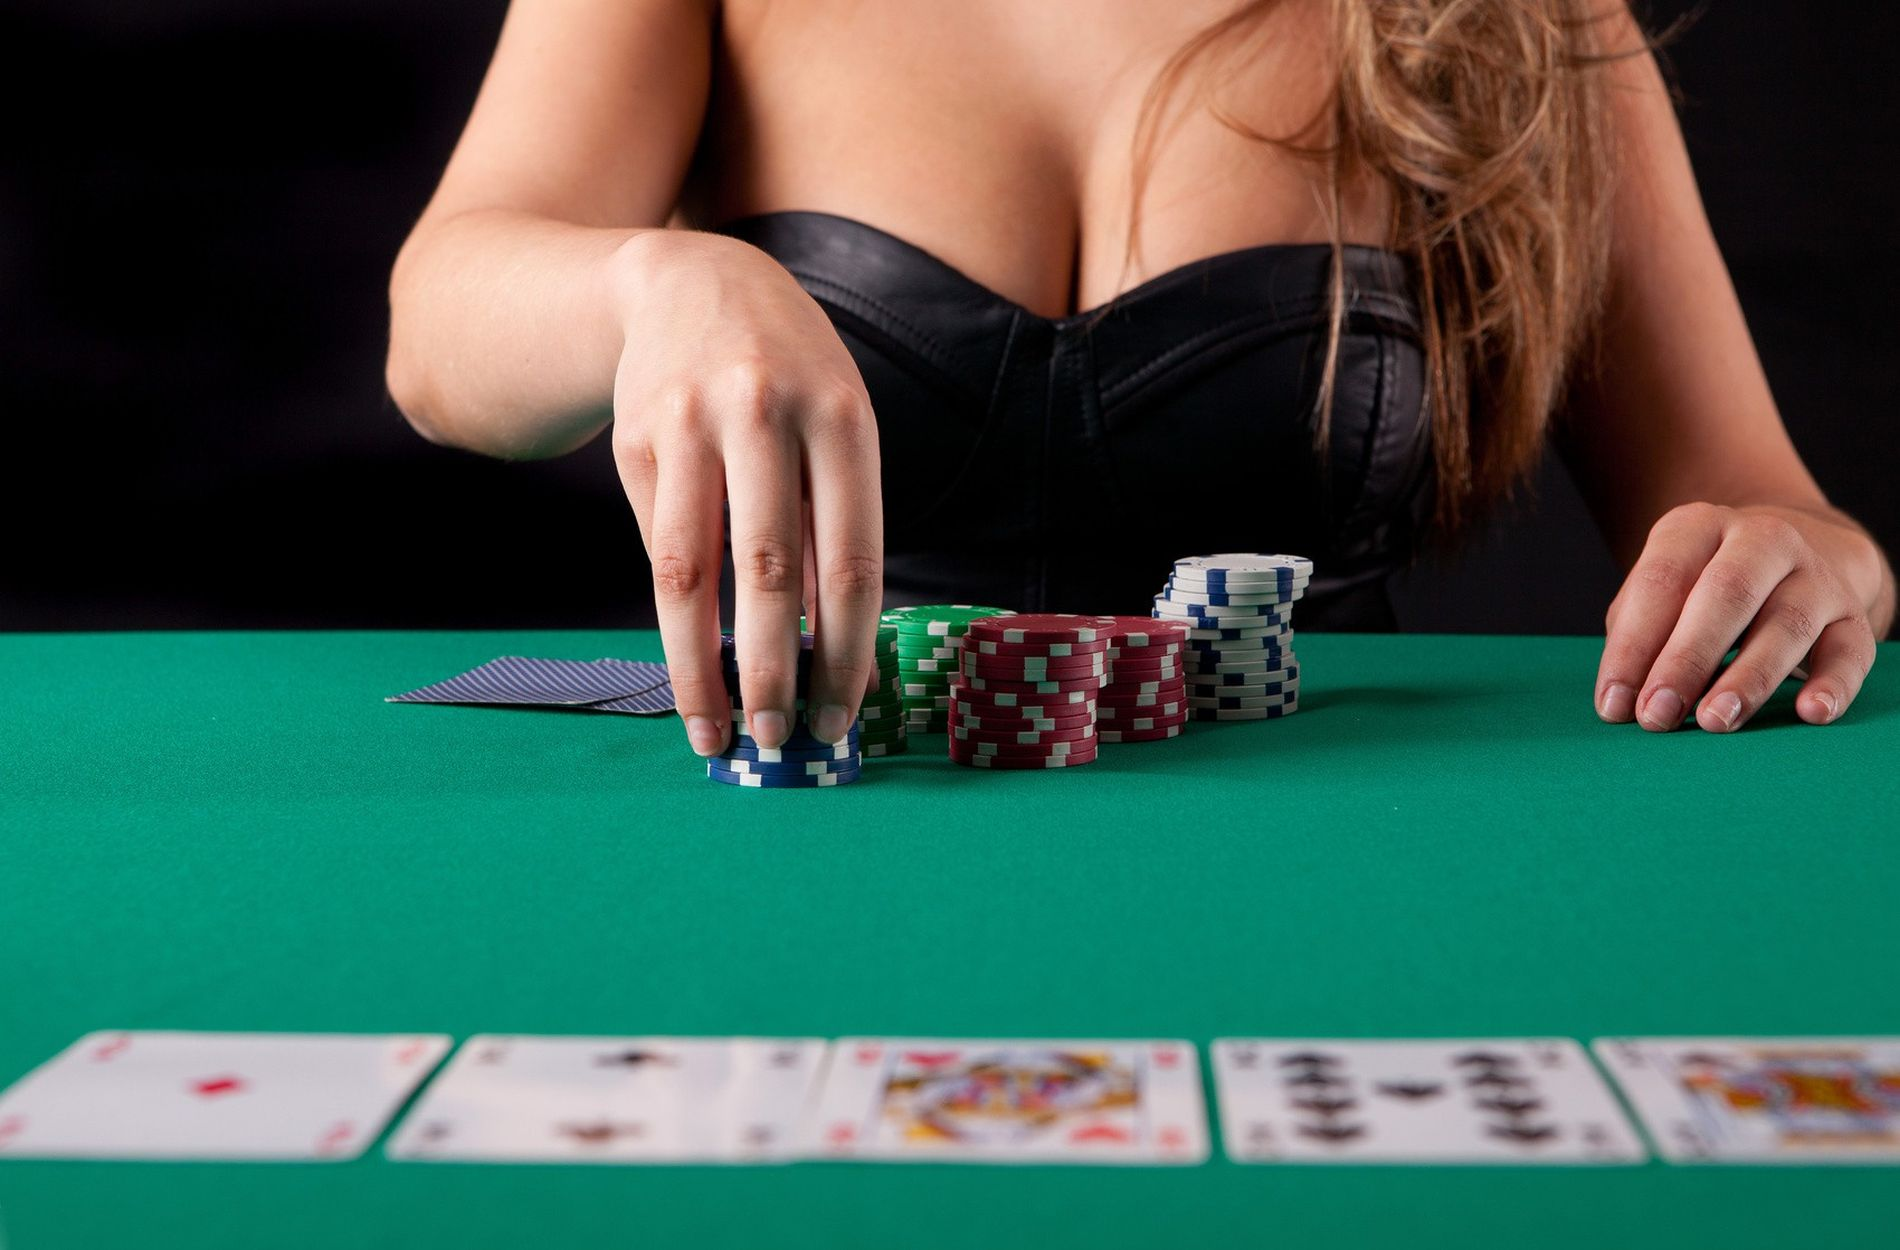 Required Even More Time? Review These Tips To Get Rid Of Gambling